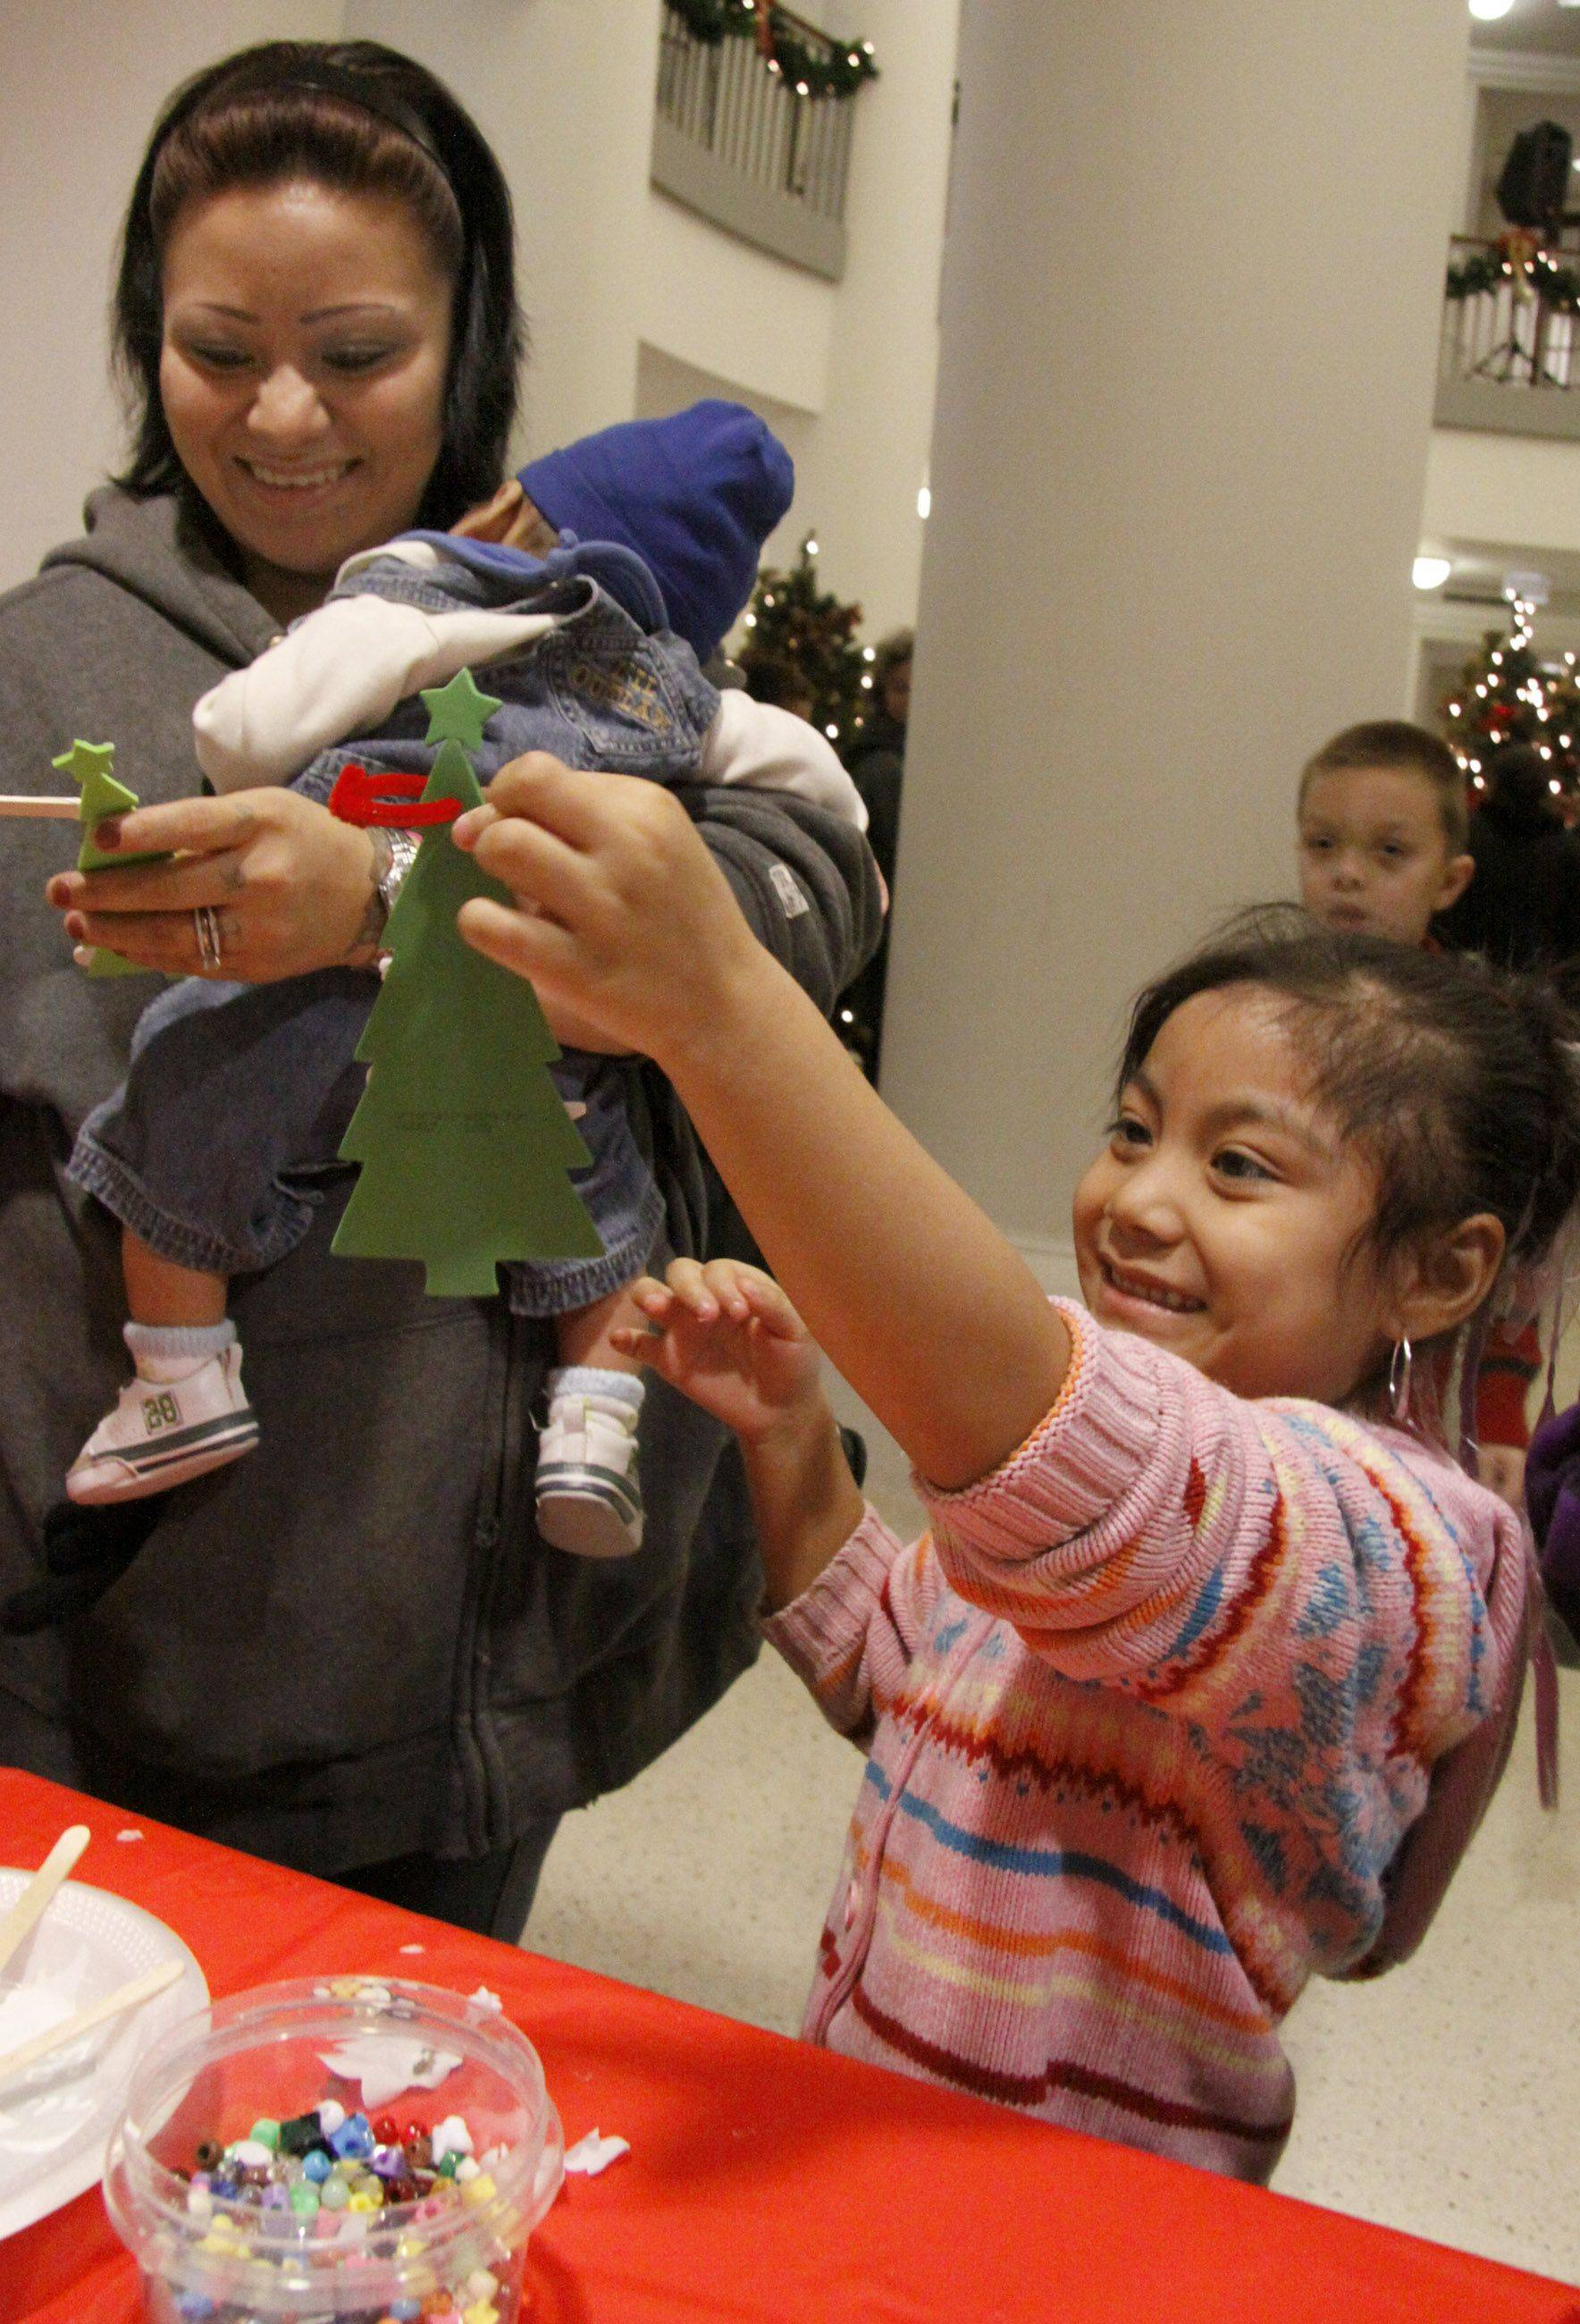 Jessica Sanchez, 5, of Addison shows her ornament to her mother Maria Friday in Addison.